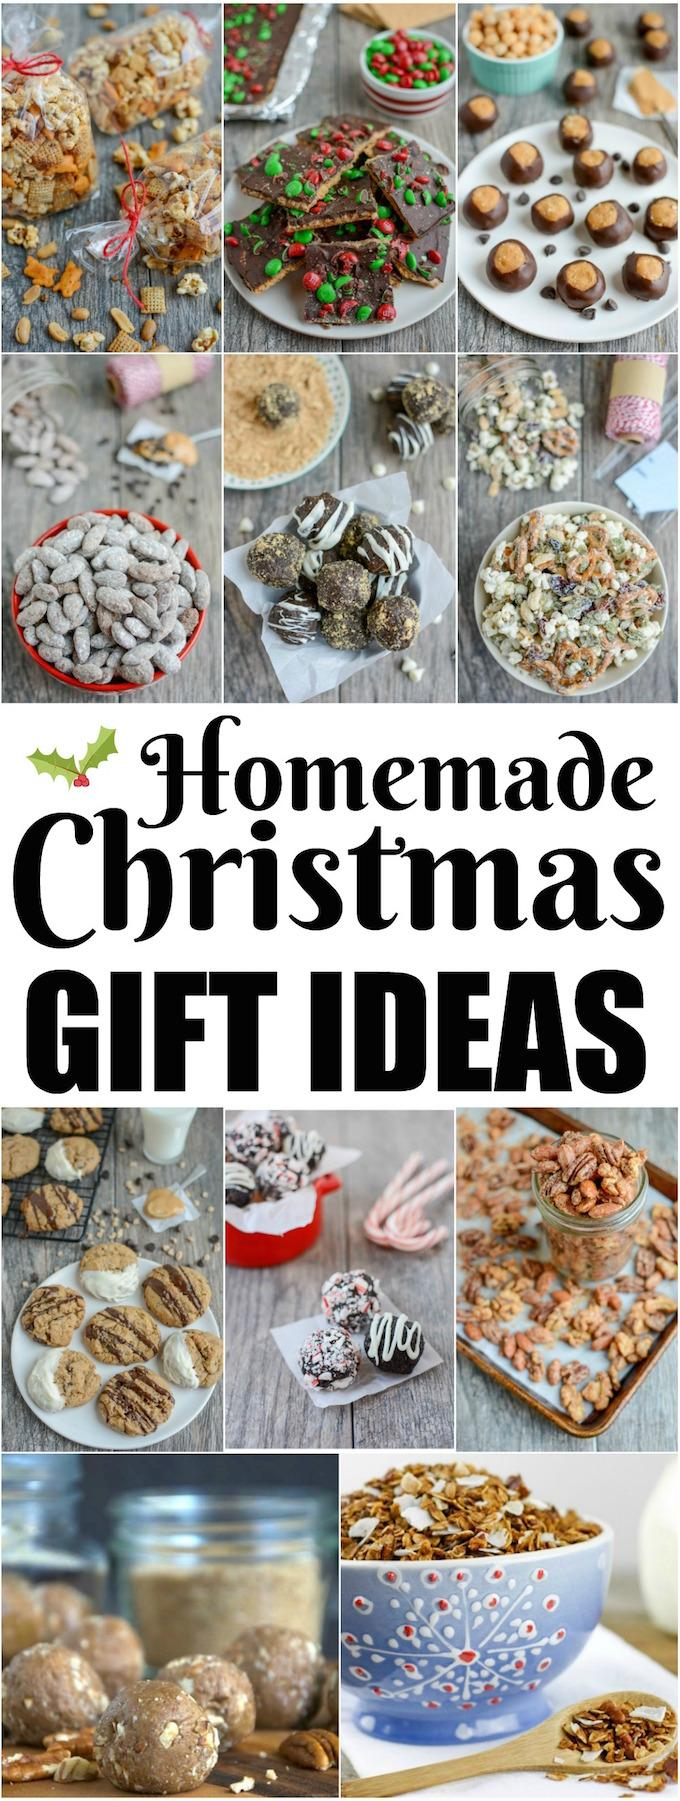 These Homemade Edible Christmas Gift Ideas are simple and delicious. Great for friends, coworkers, teachers and more this holiday season!